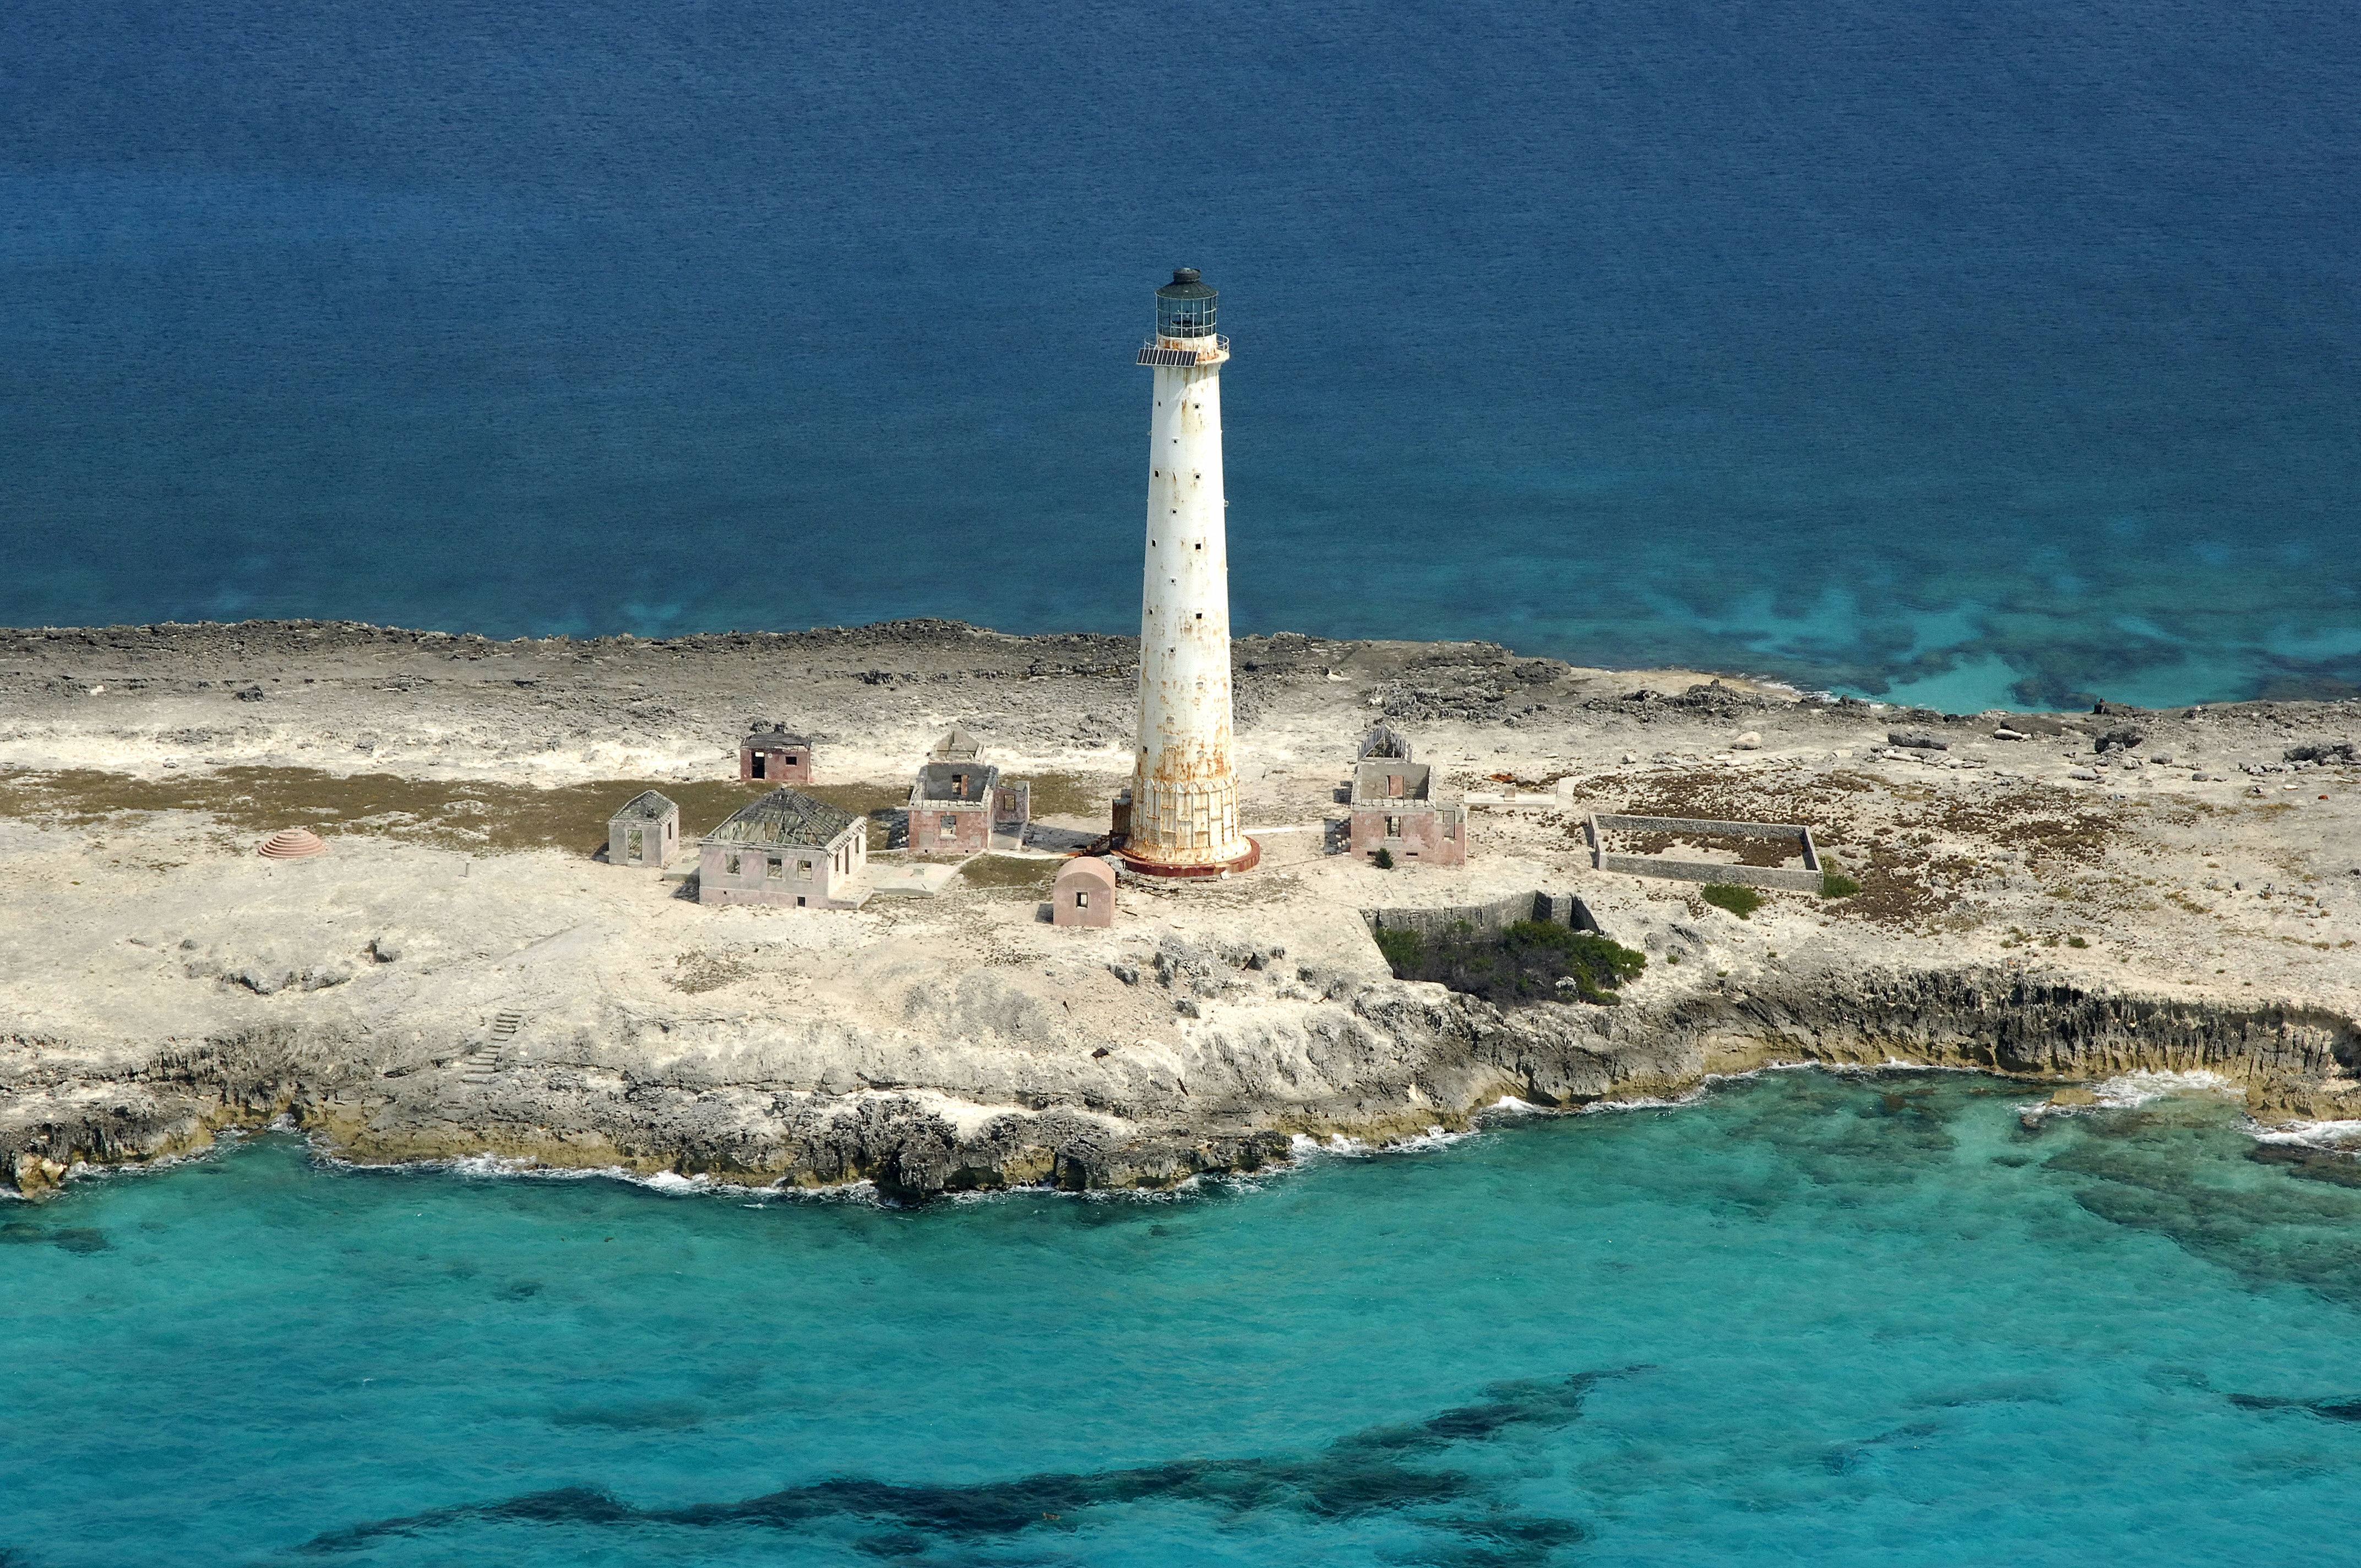 Great issac light great isaac cay lighthouse in bi bahamas great issac light great isaac cay lighthouse in bi bahamas lighthouse reviews phone number marinas geenschuldenfo Images